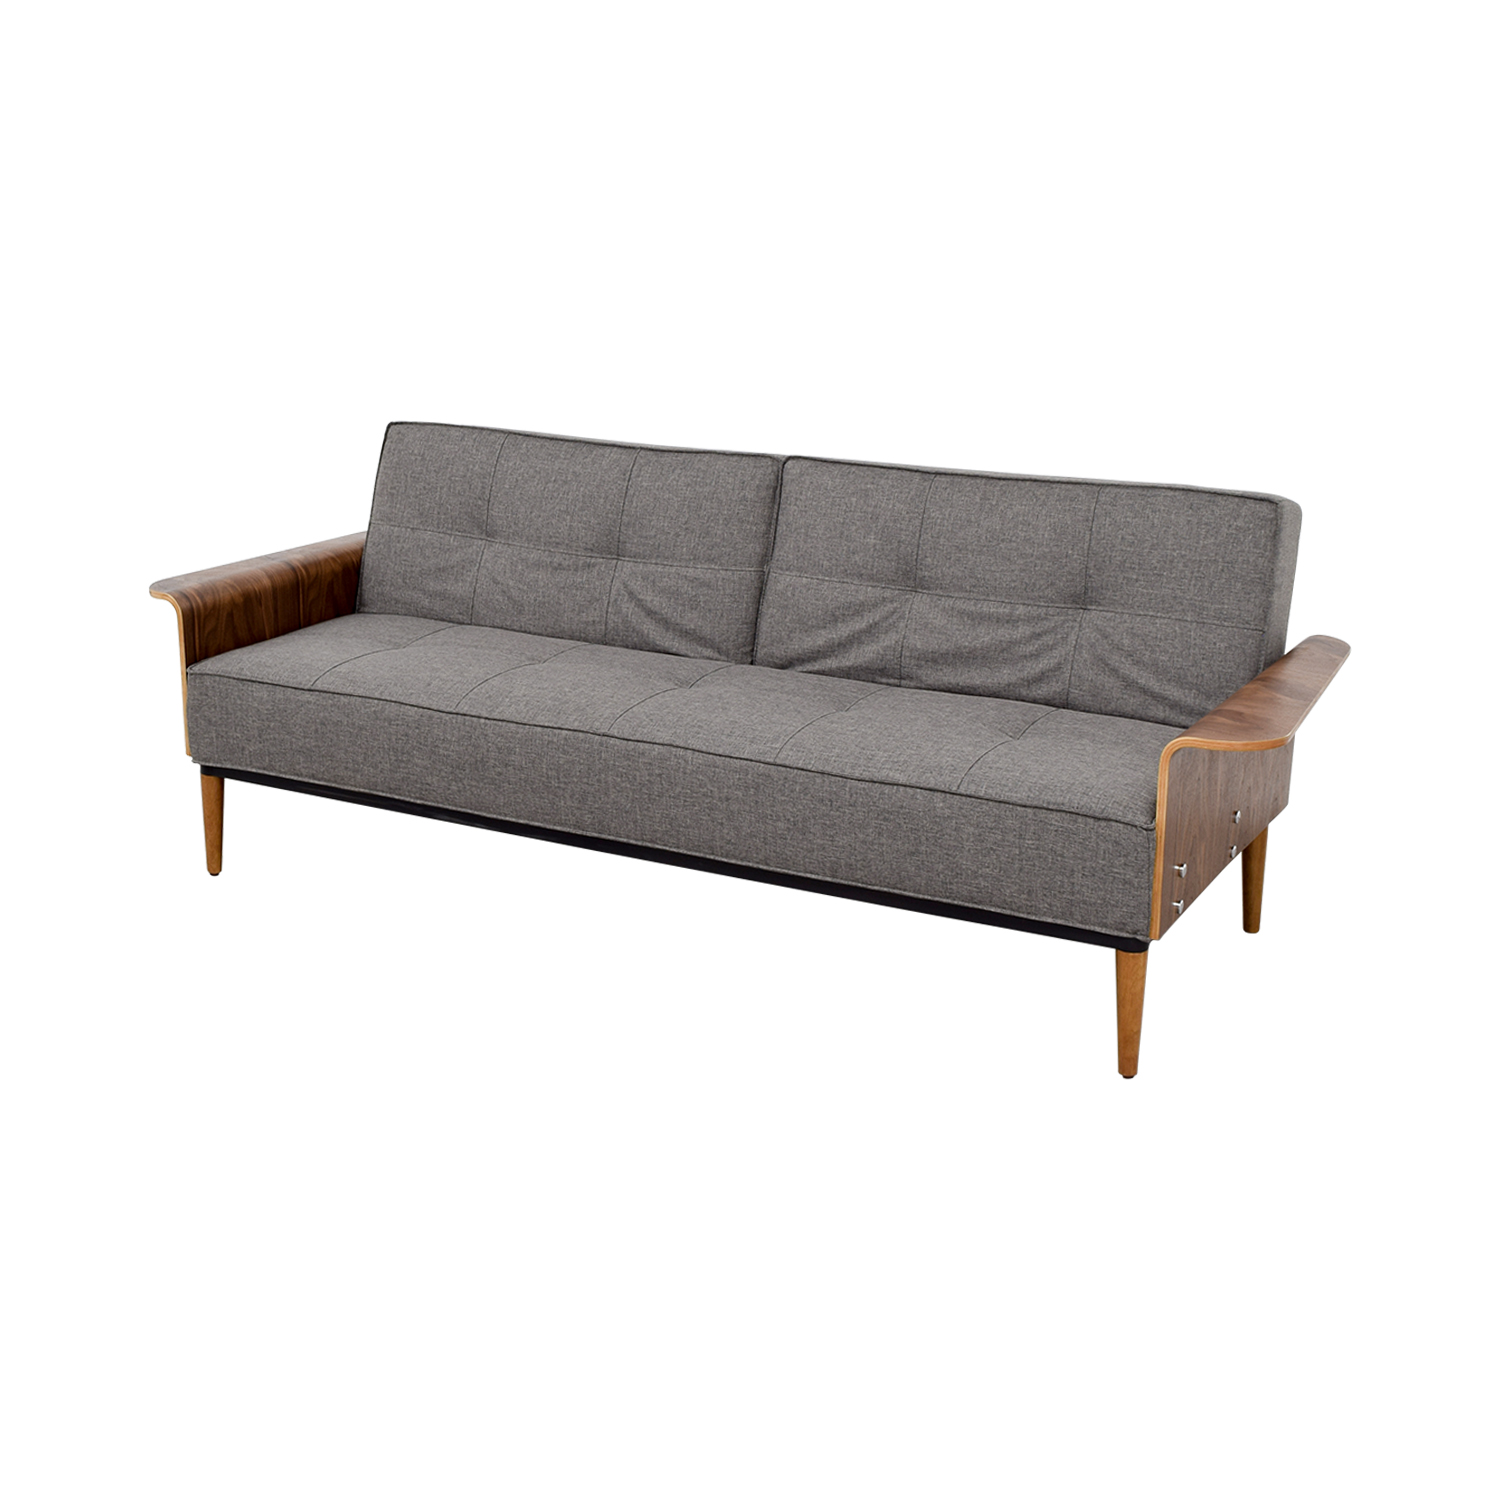 Inmod Inmod Bjorg Tufted Dark Grey Sofabed used